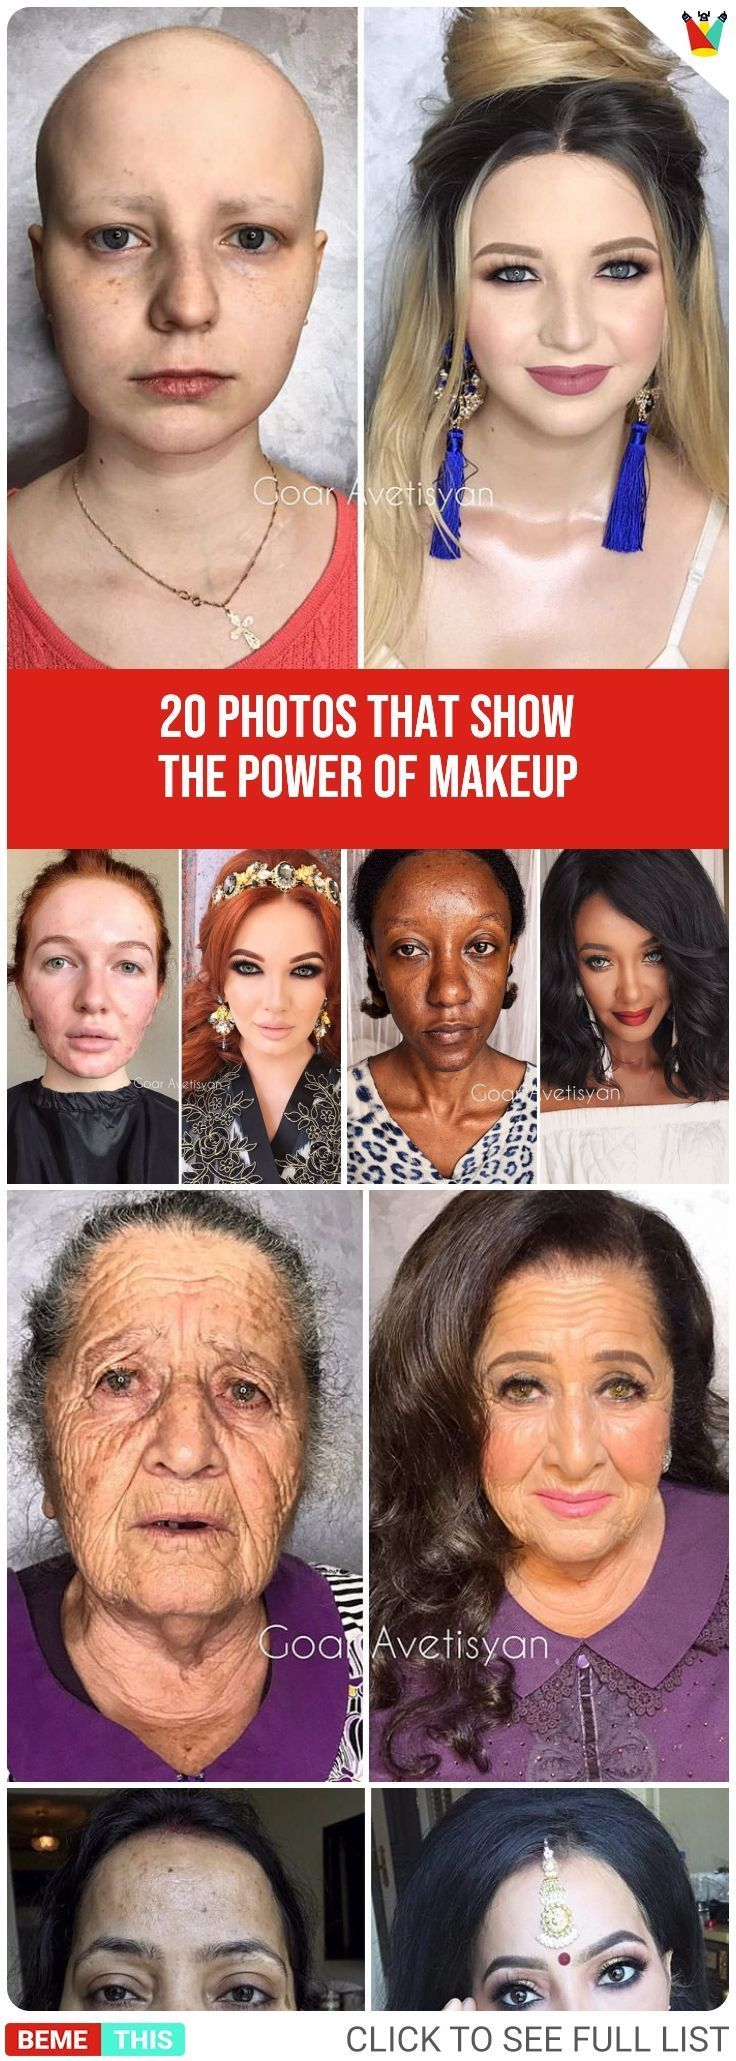 This Artist Demonstrates the True Power of Makeup photos